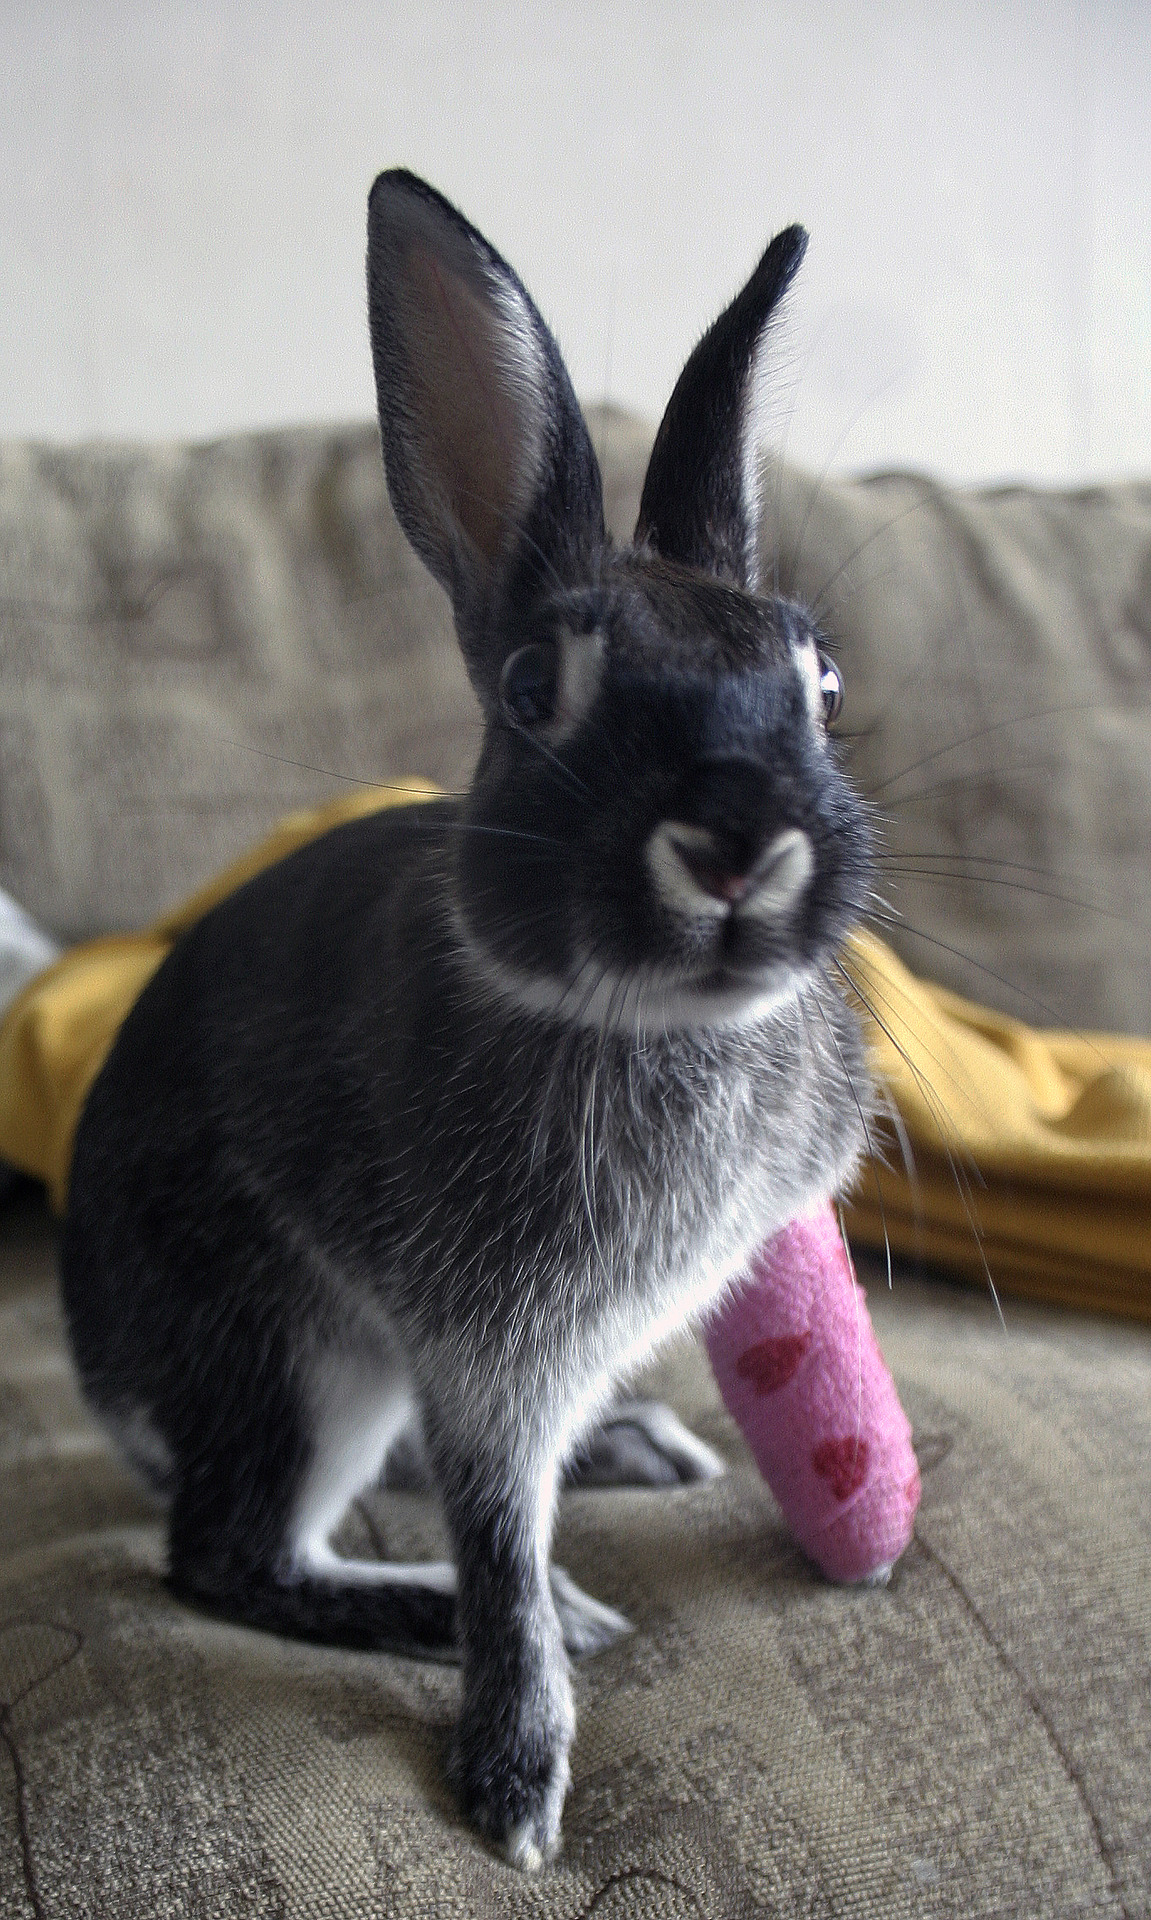 Want to Sign Bunny's Cast?